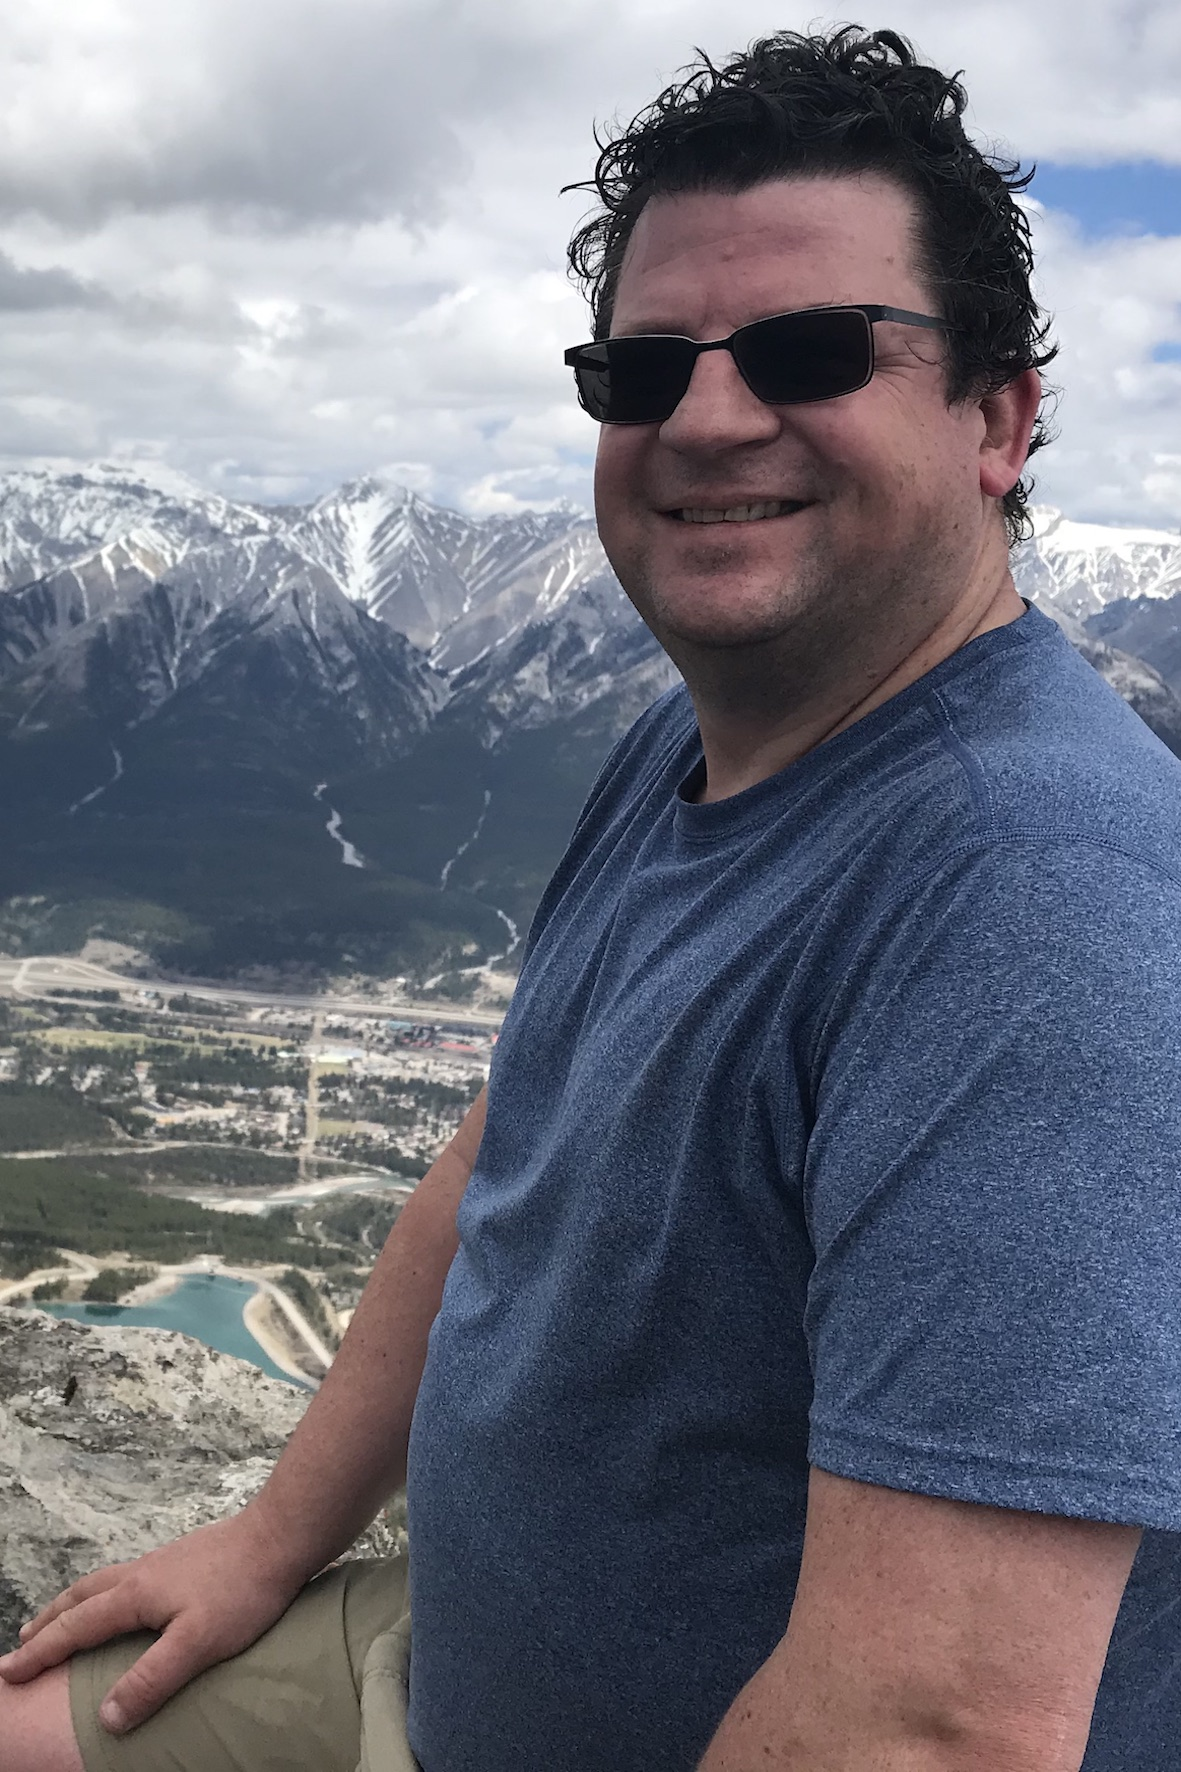 Martyn on the summit of Ha Ling Peak, Alberta, Canada